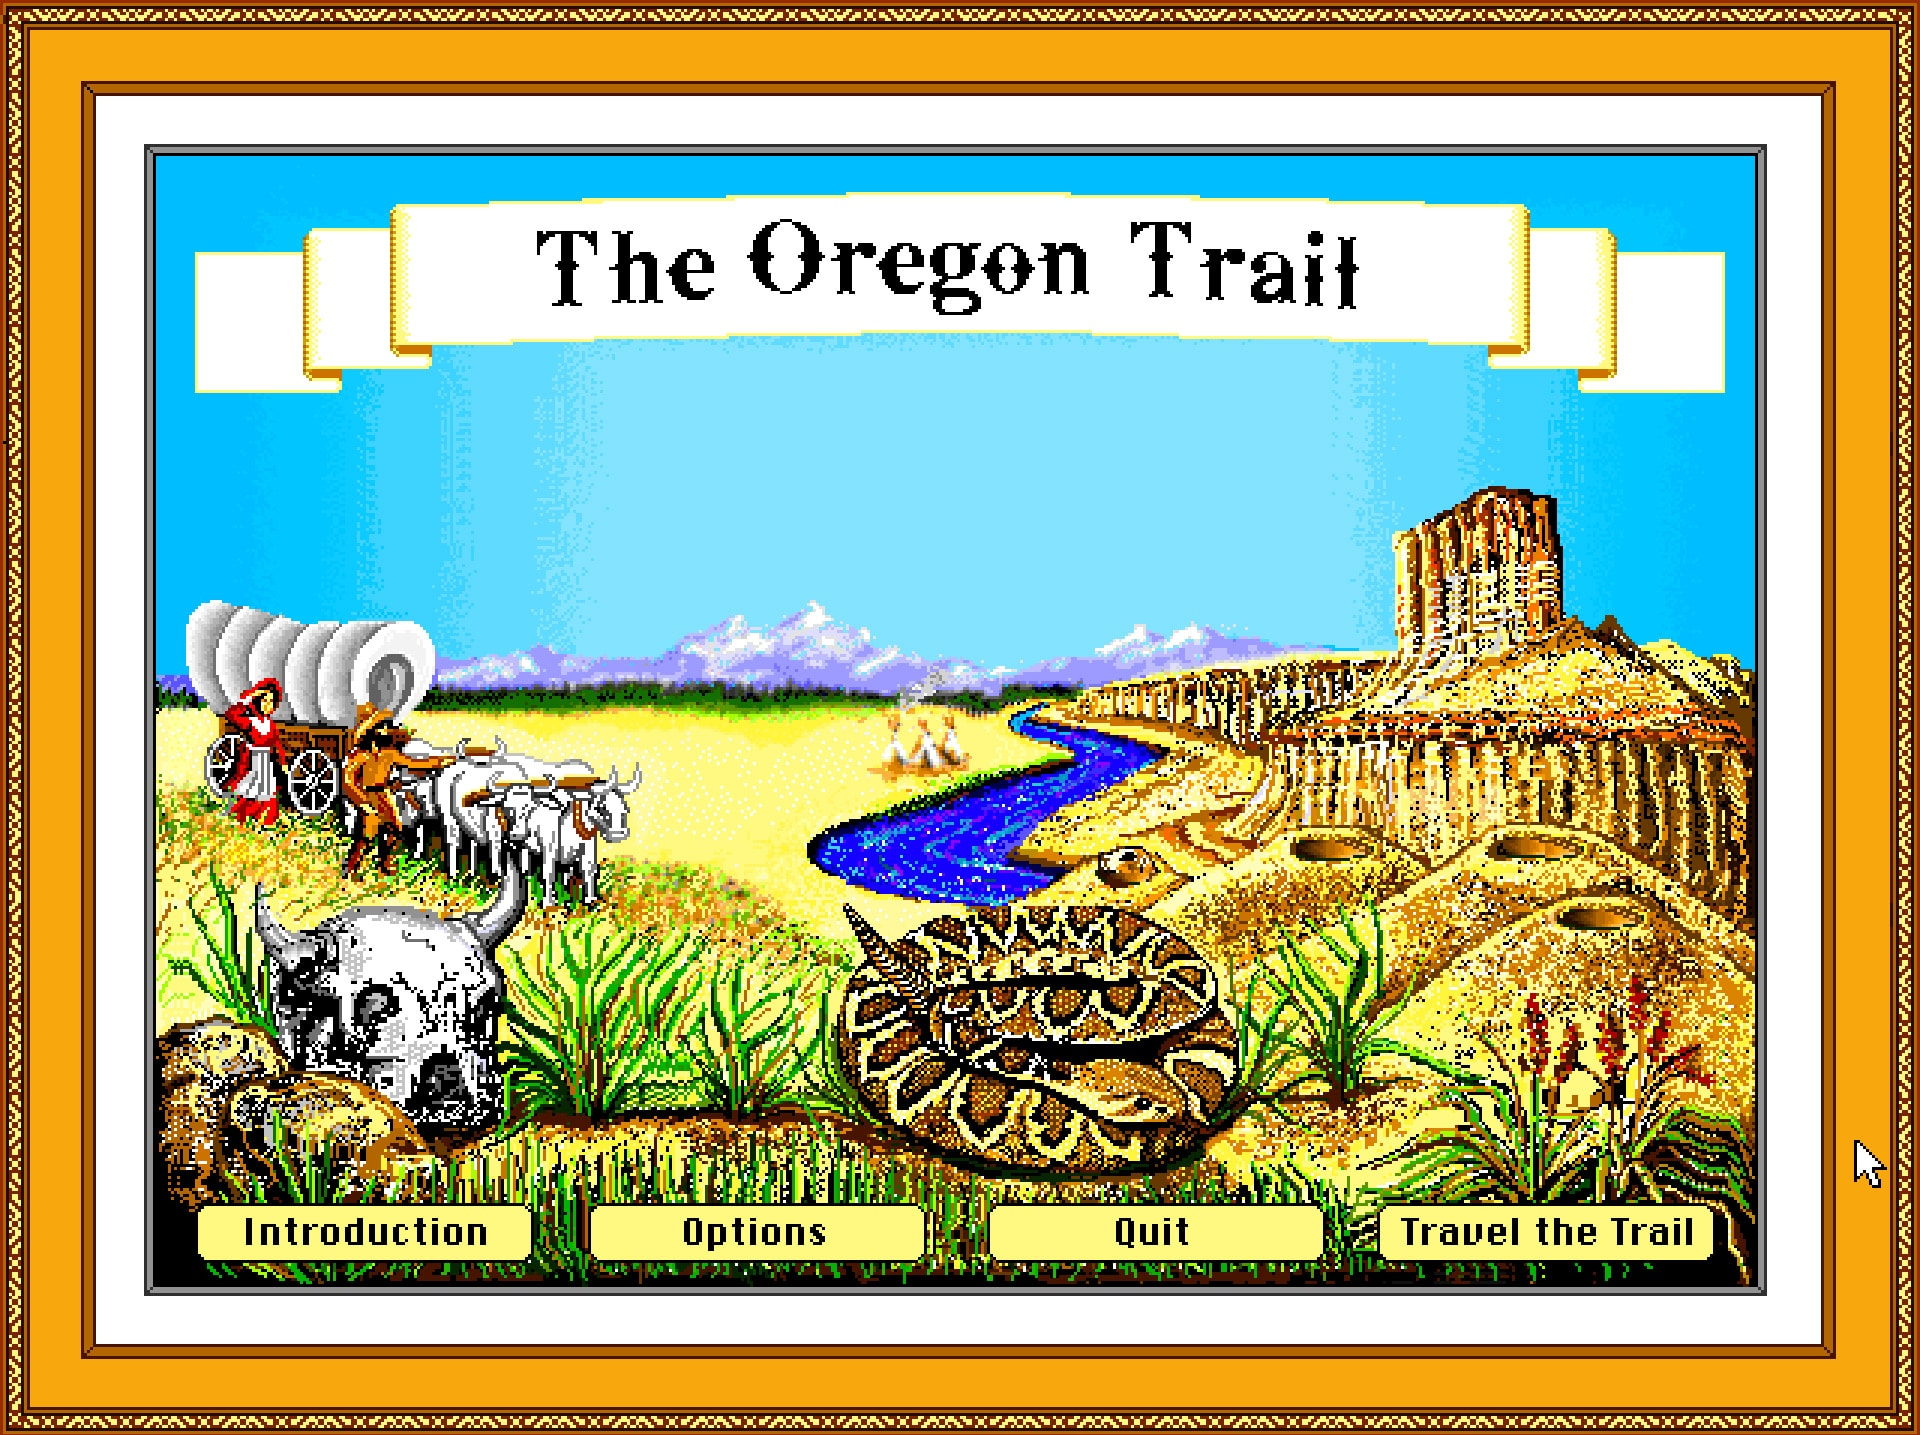 The Oregon Trail Deluxe Game Screenshot 1